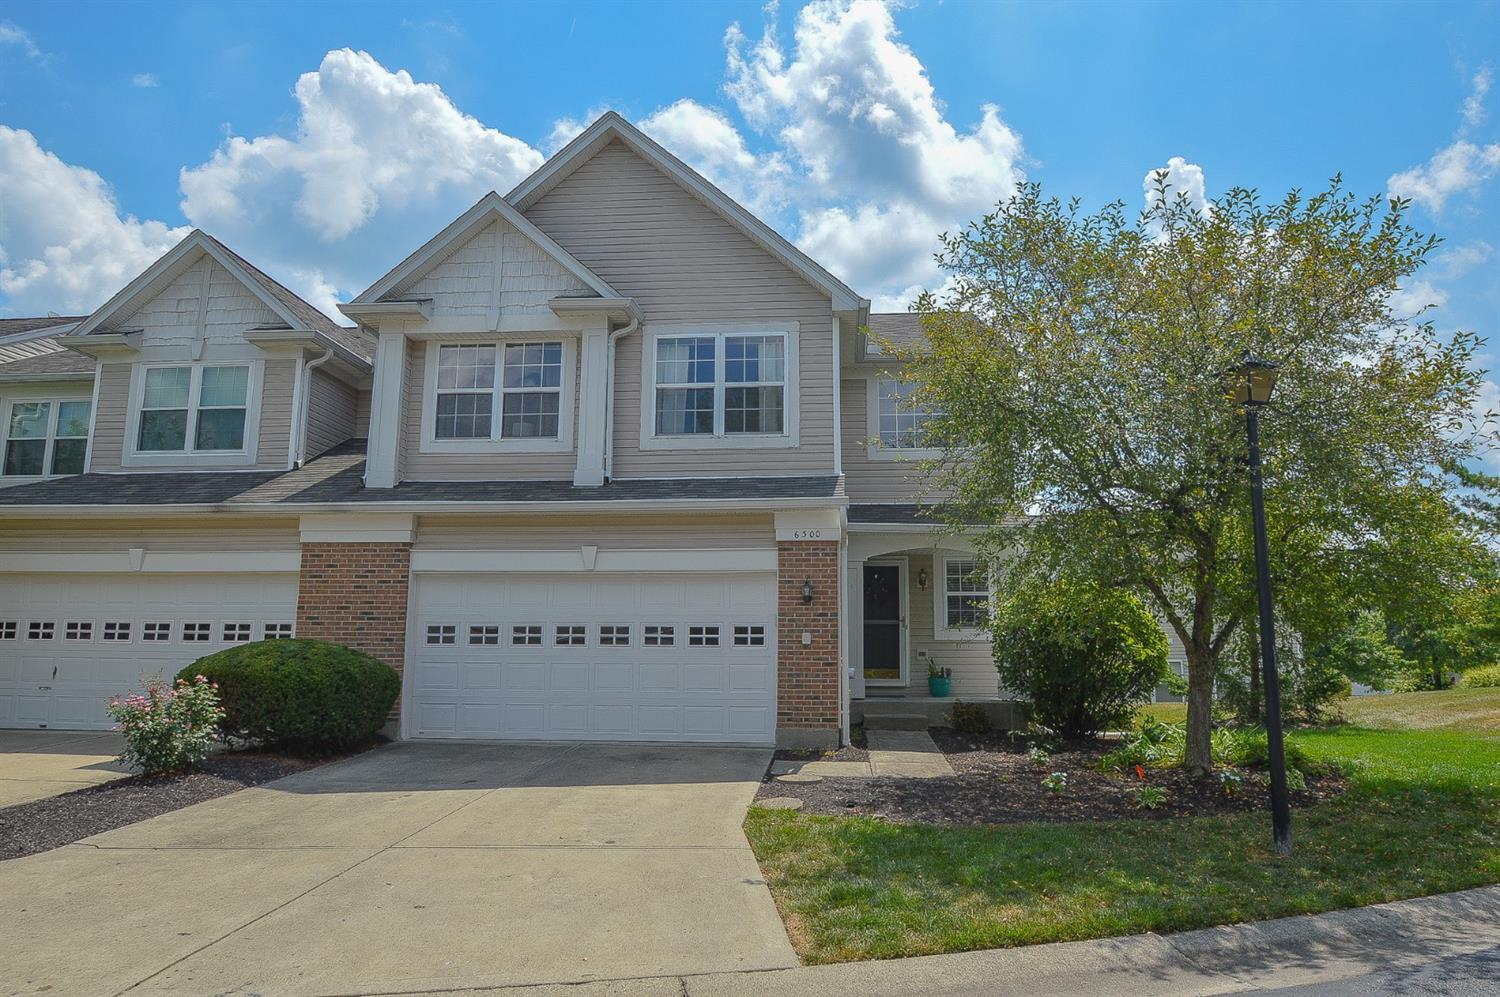 Property for sale at 6300 Inverness Way, Mason,  Ohio 45040